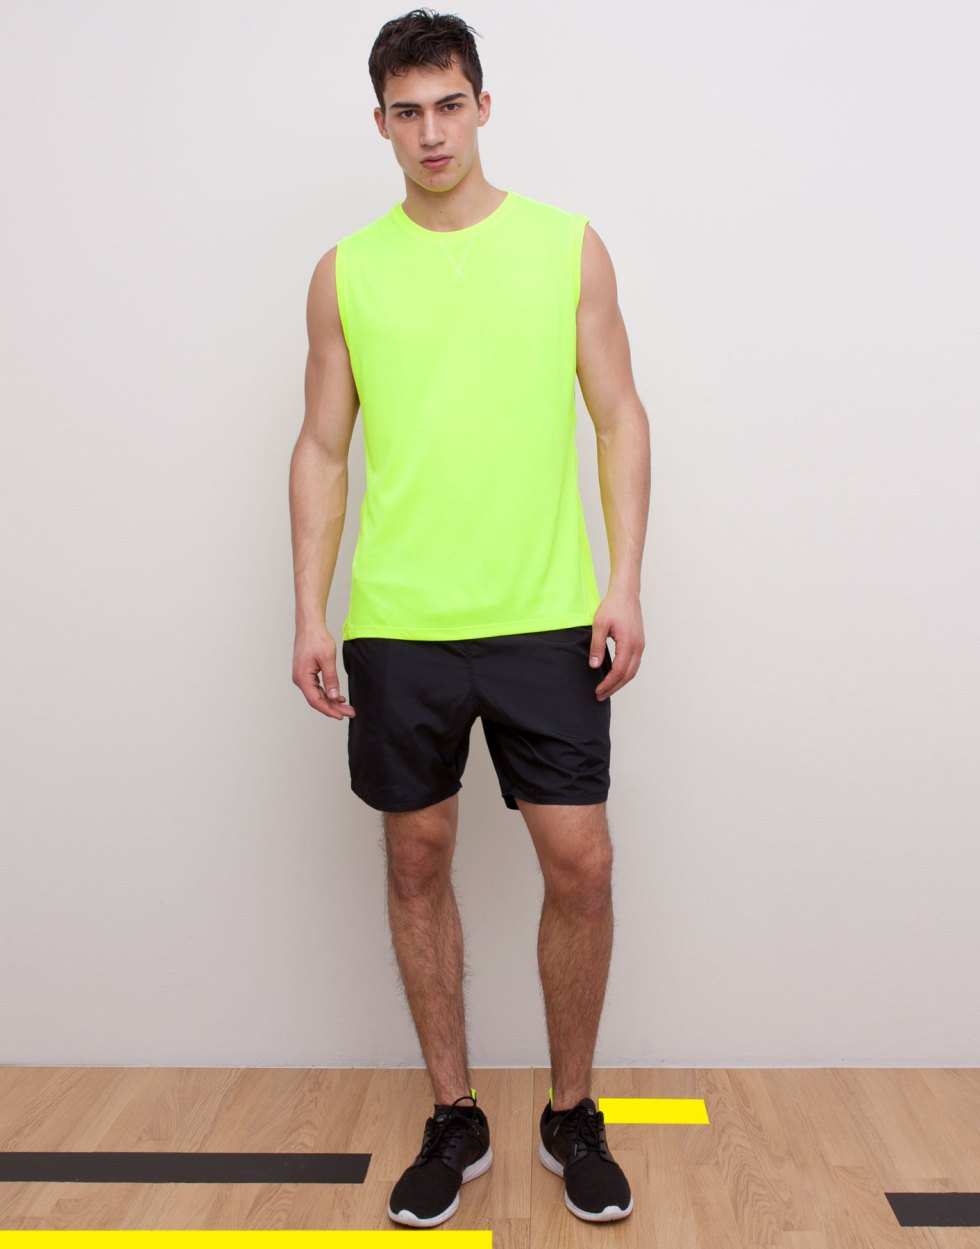 Introducing Pull & Bear Gymwear with Alessio Pozzi modeling comfy t-shirts, cotton pants and shorts all for your dynamic activities.